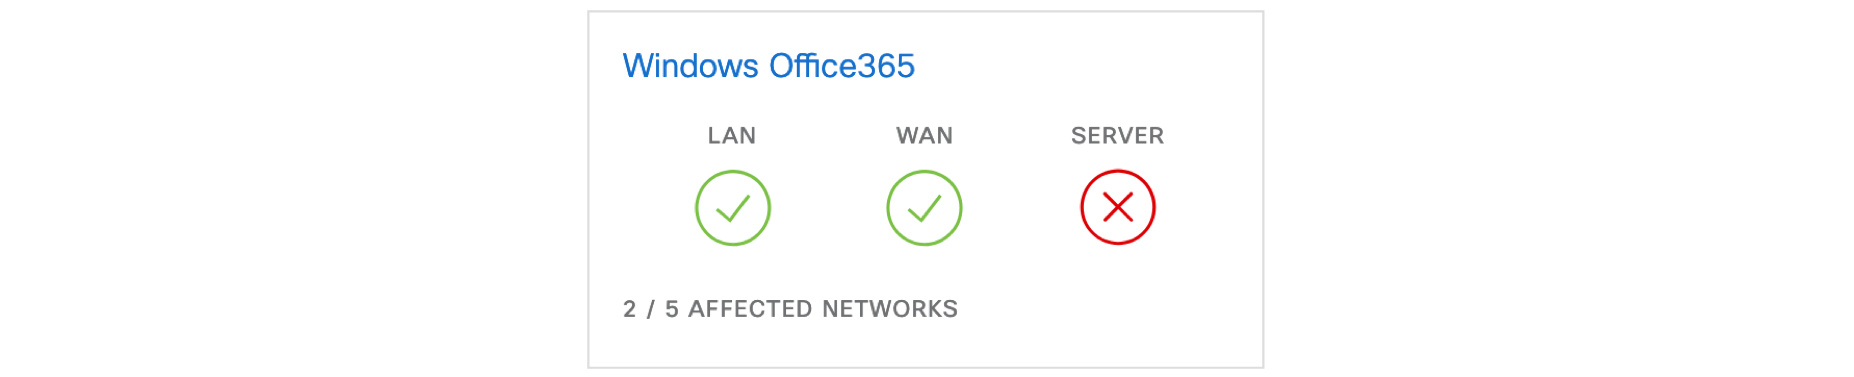 Optimize Performance of Office 365 - Cisco Meraki Blog Cisco